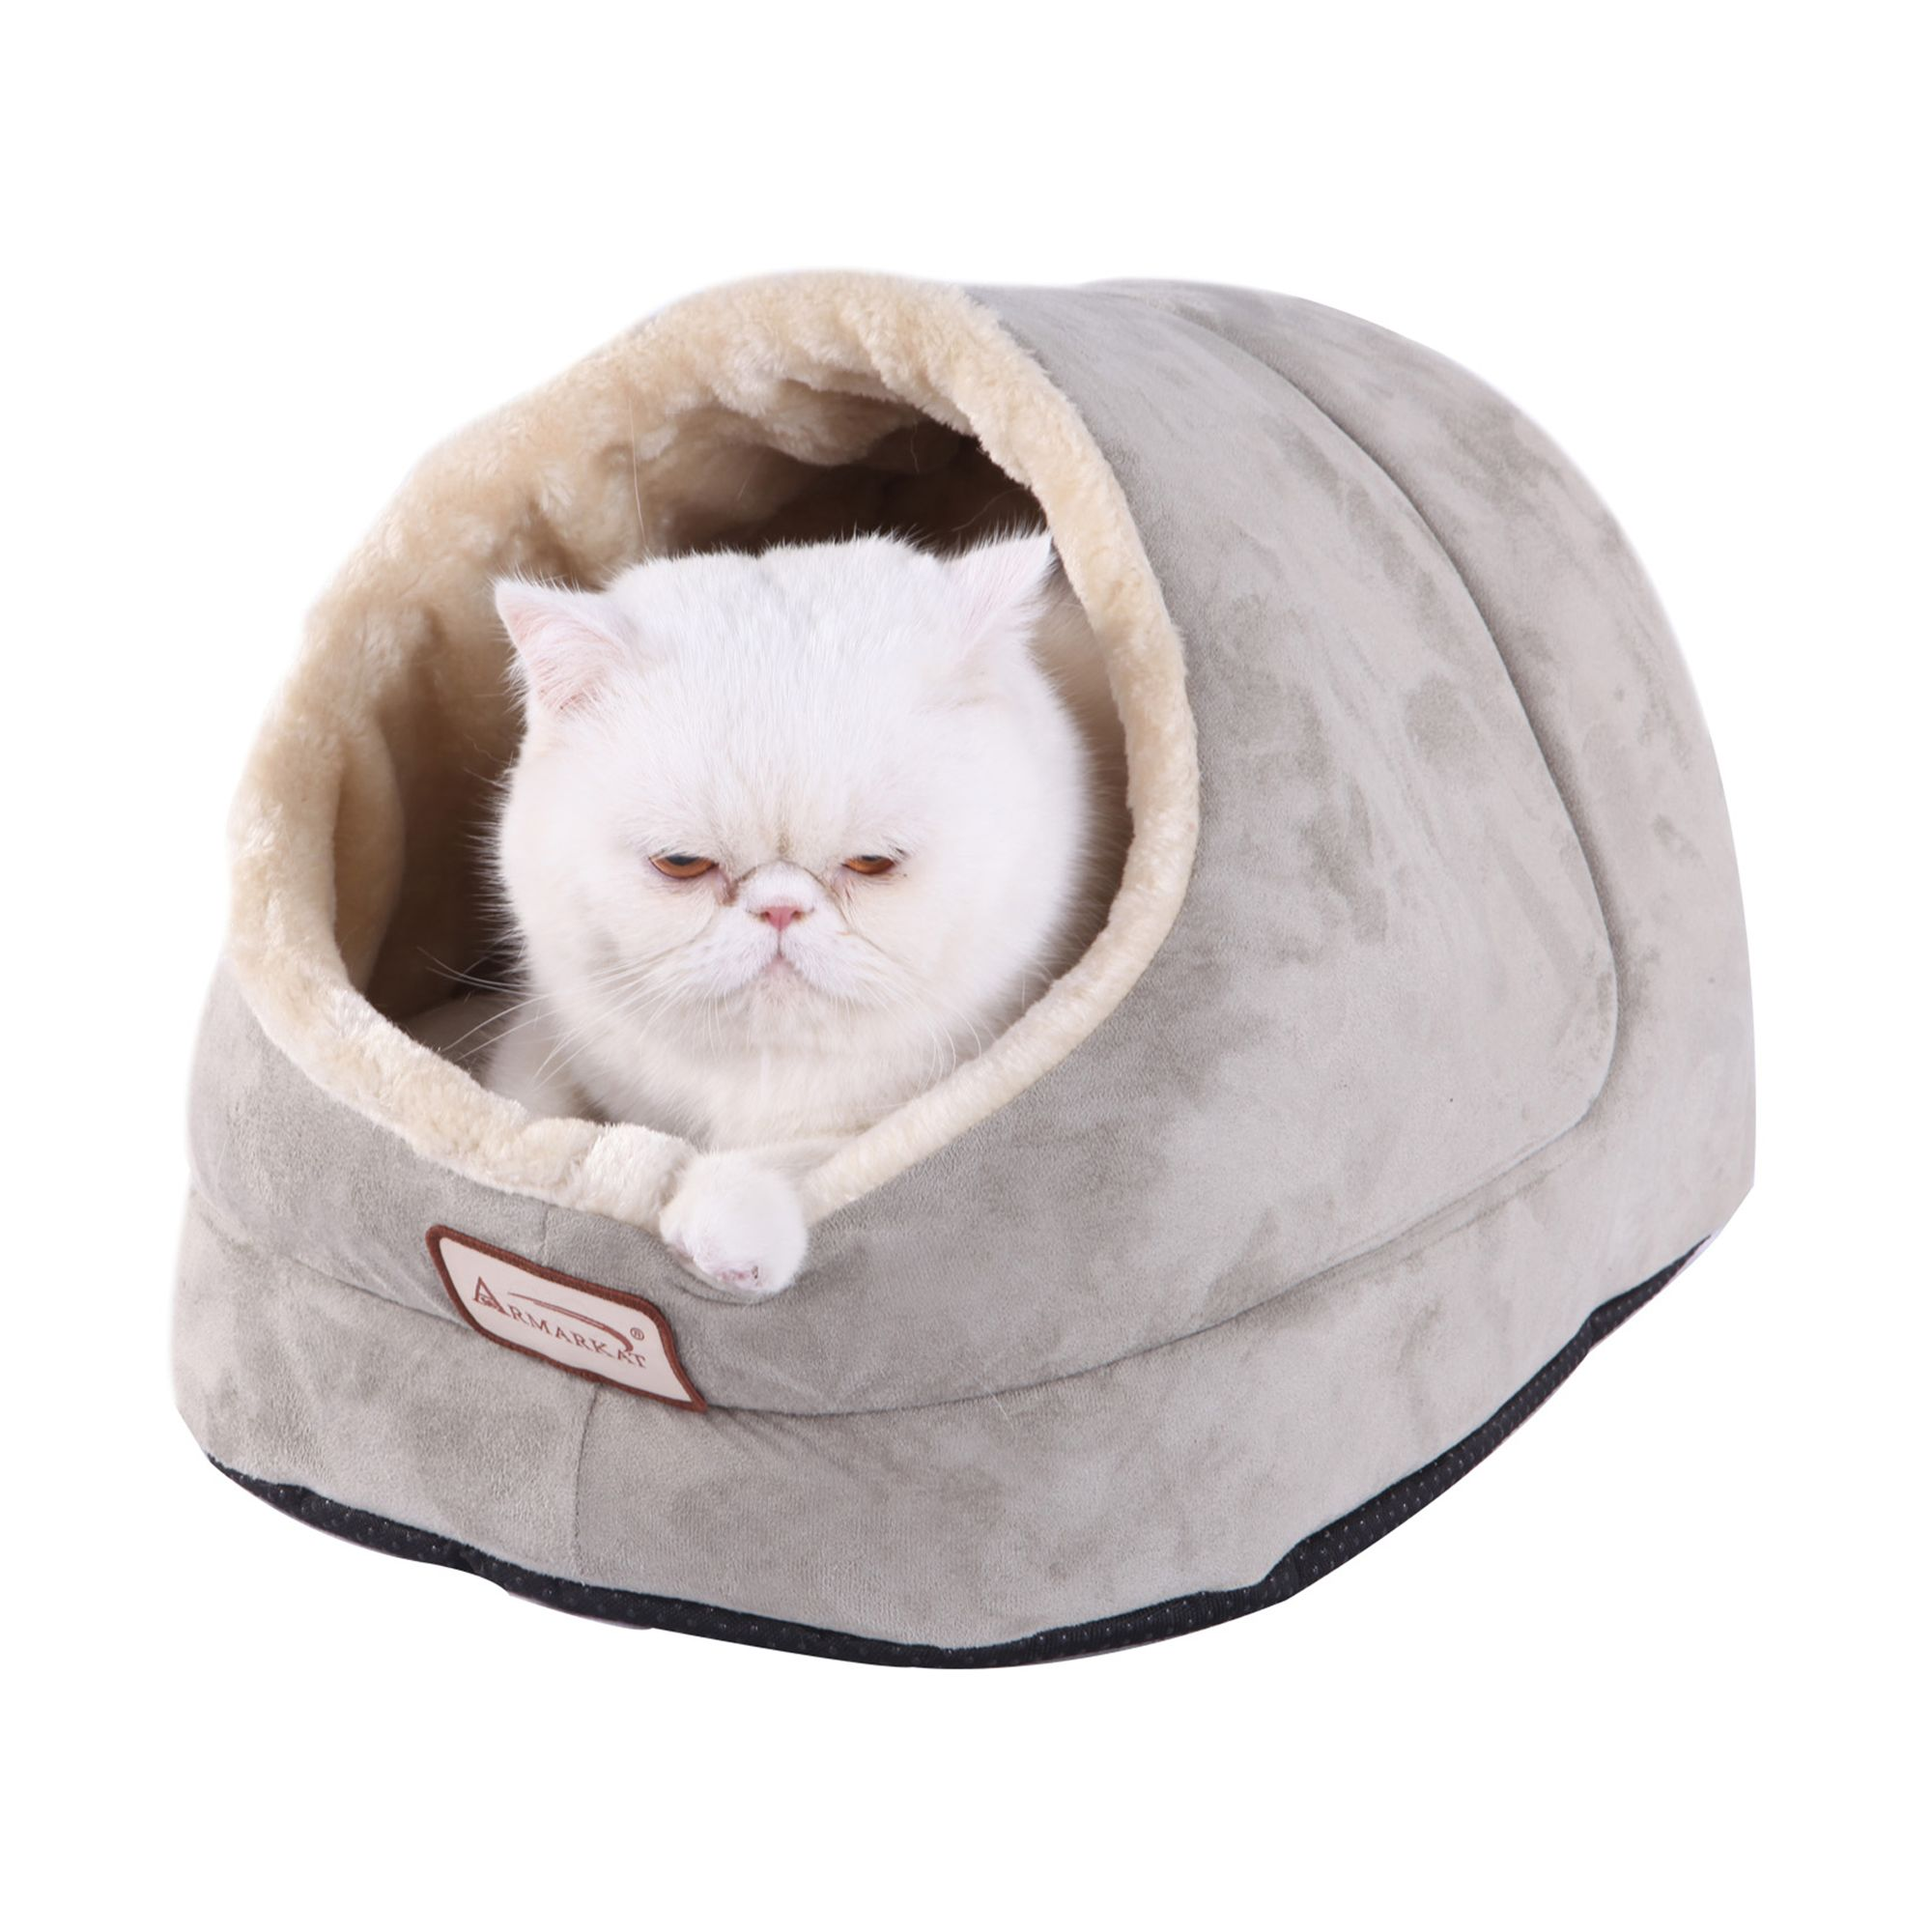 "Armarkat Enclosed Pet Bed size: 18""L x 14""W x 12""H, Sage Green & Beige"